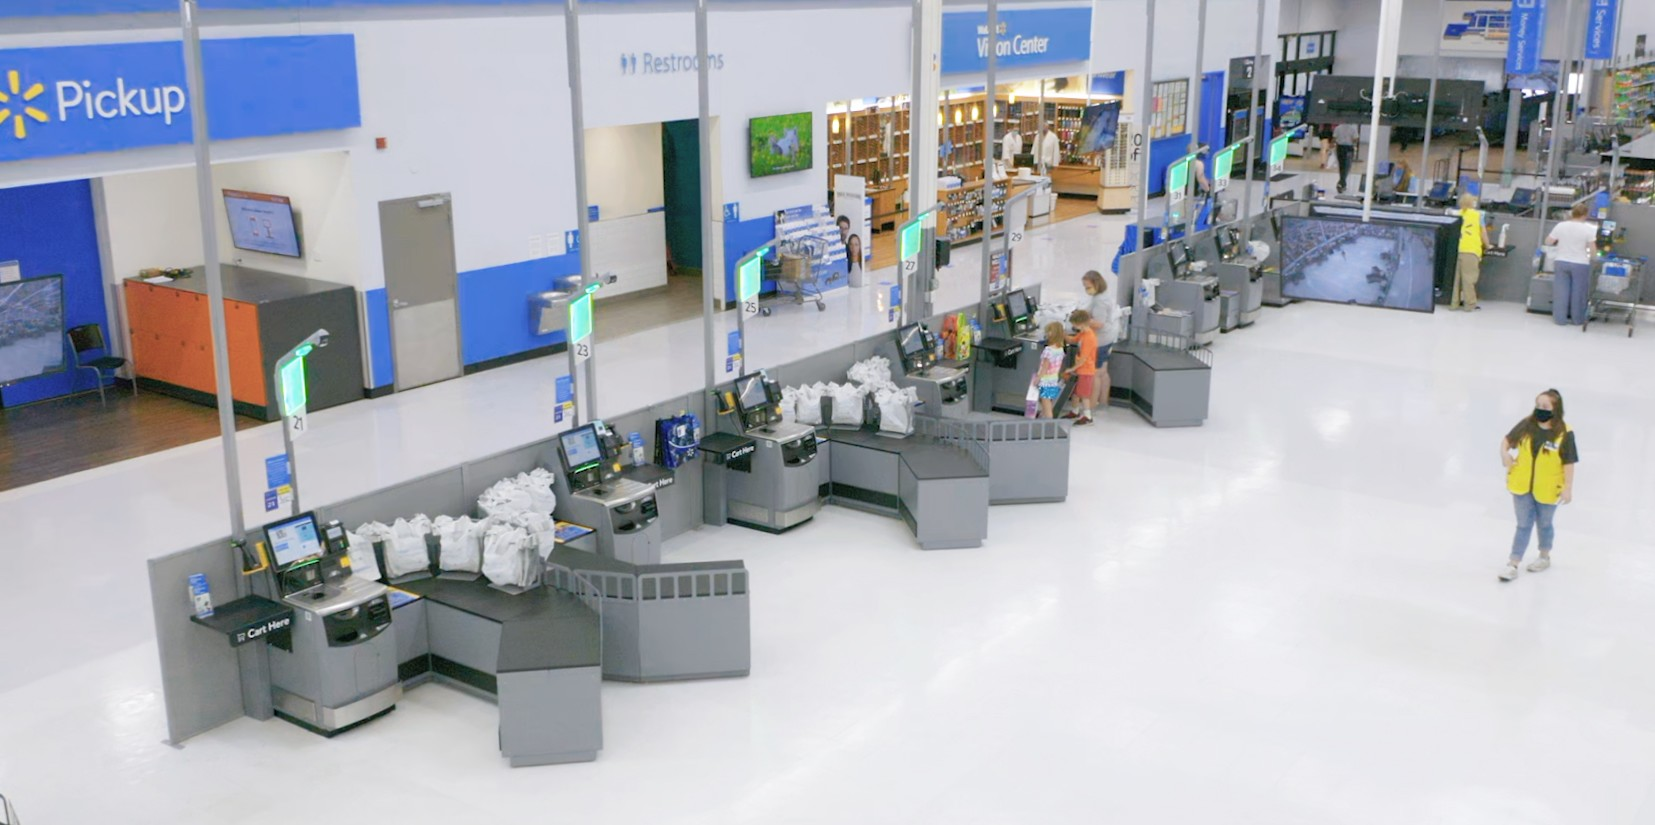 Overhead view of self checkout area